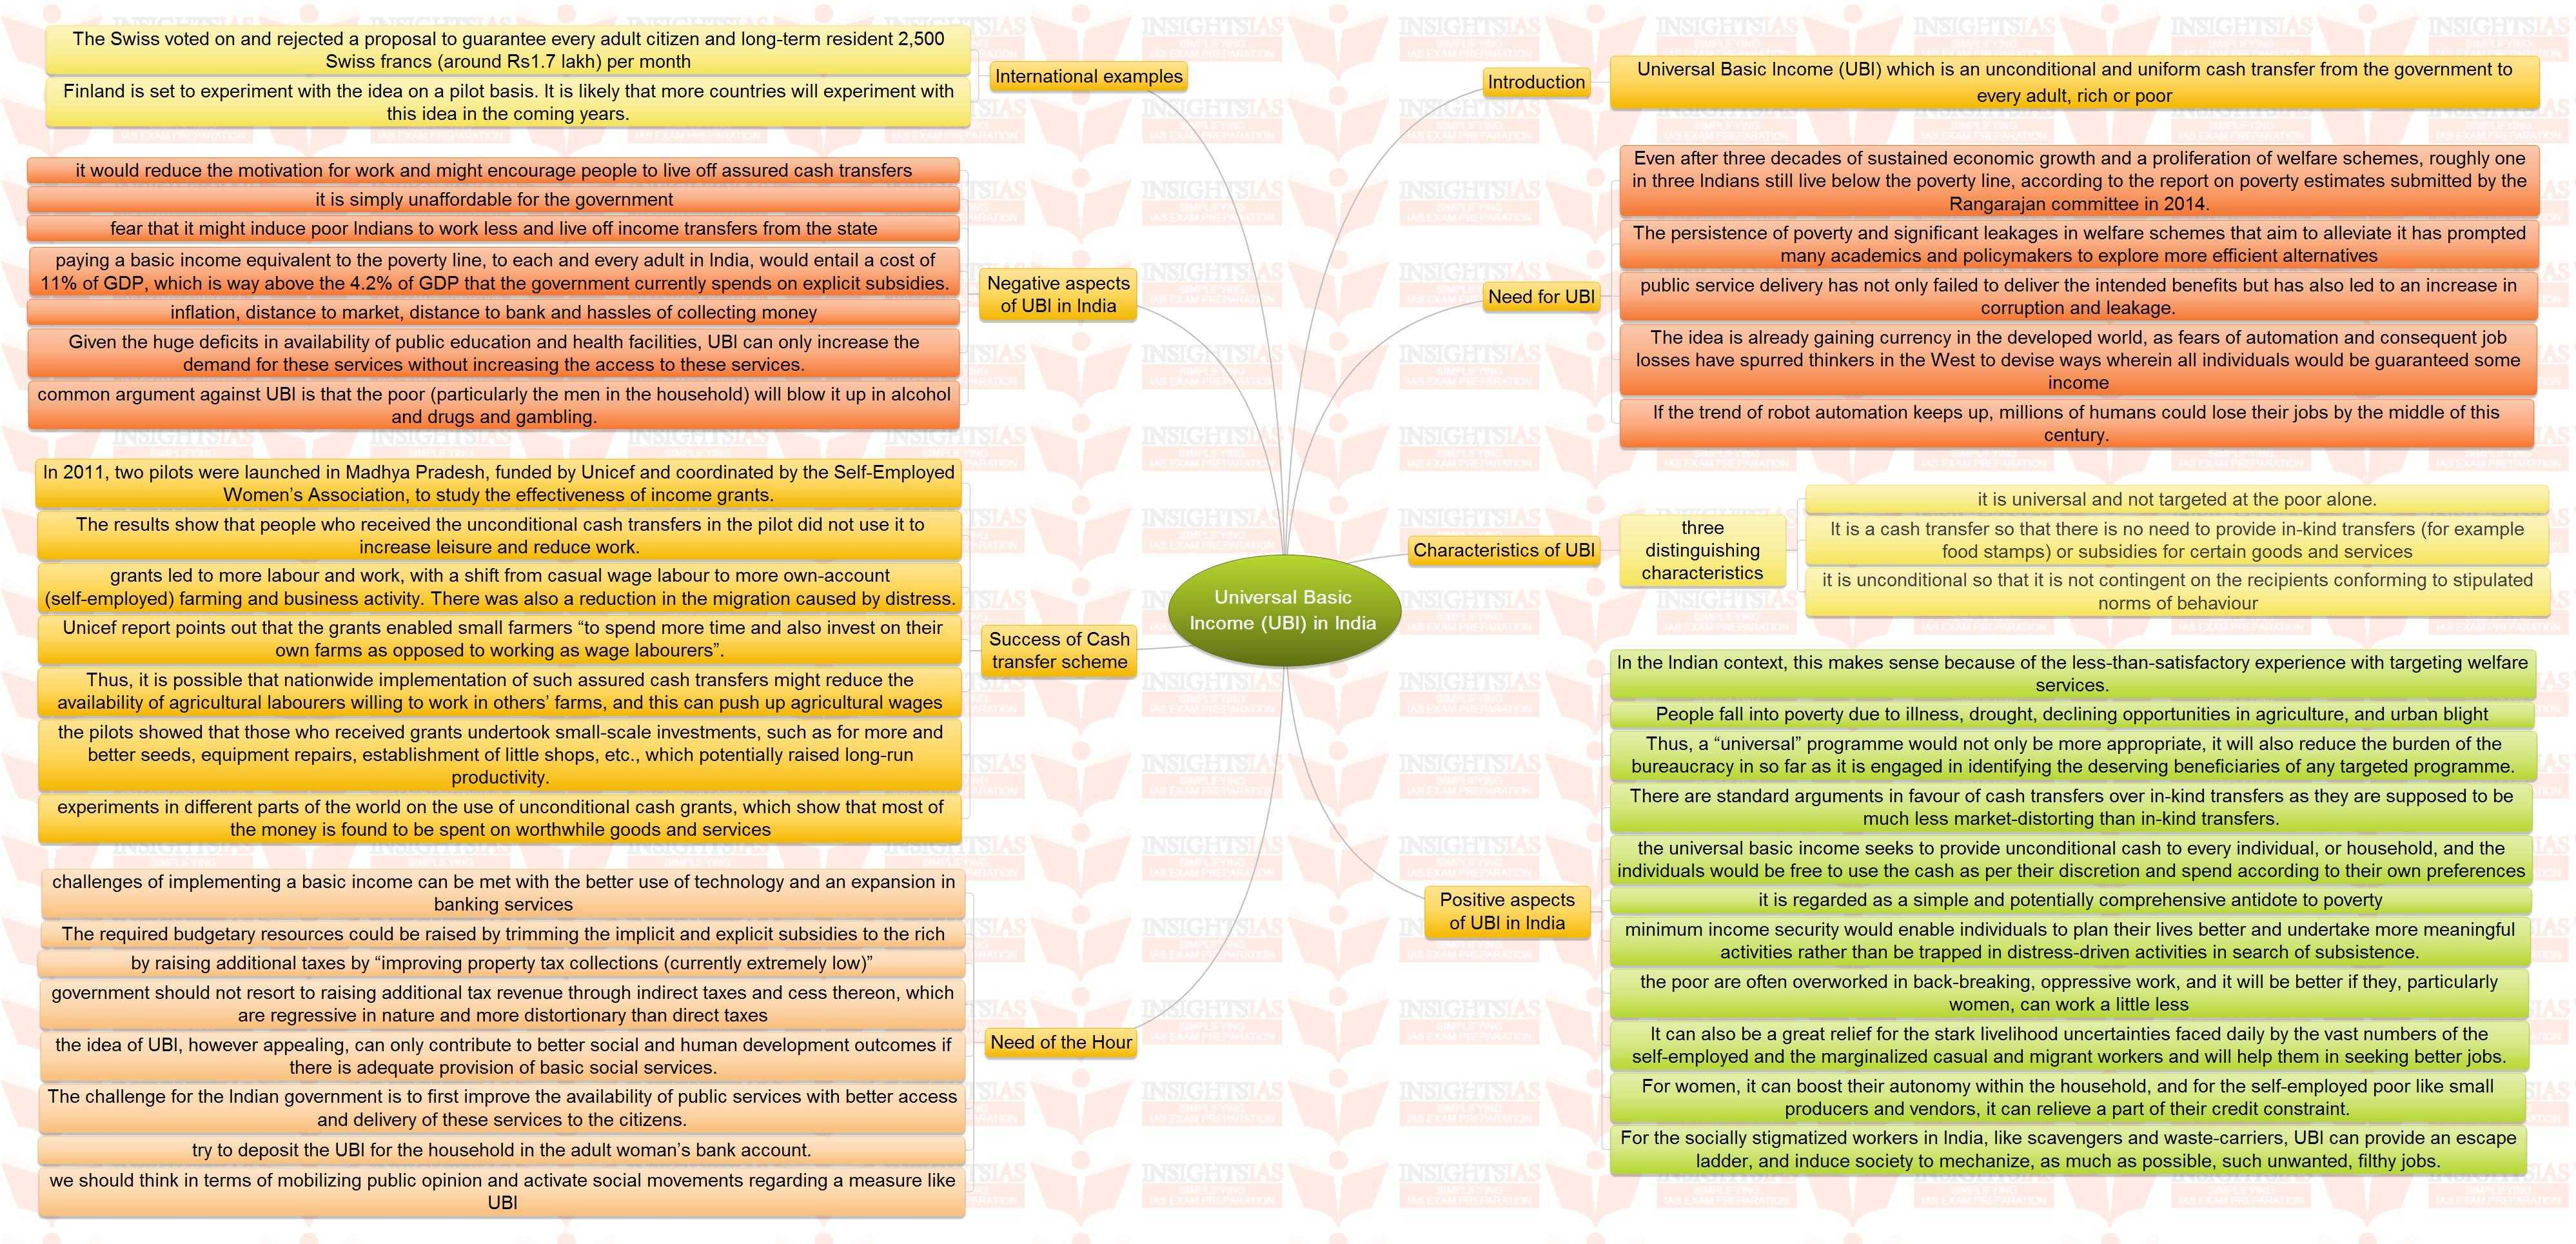 insights mindmaps domestic violence against women and insights mindmaps ldquodomestic violence against womenrdquo and ldquouniversal basic income in rdquo